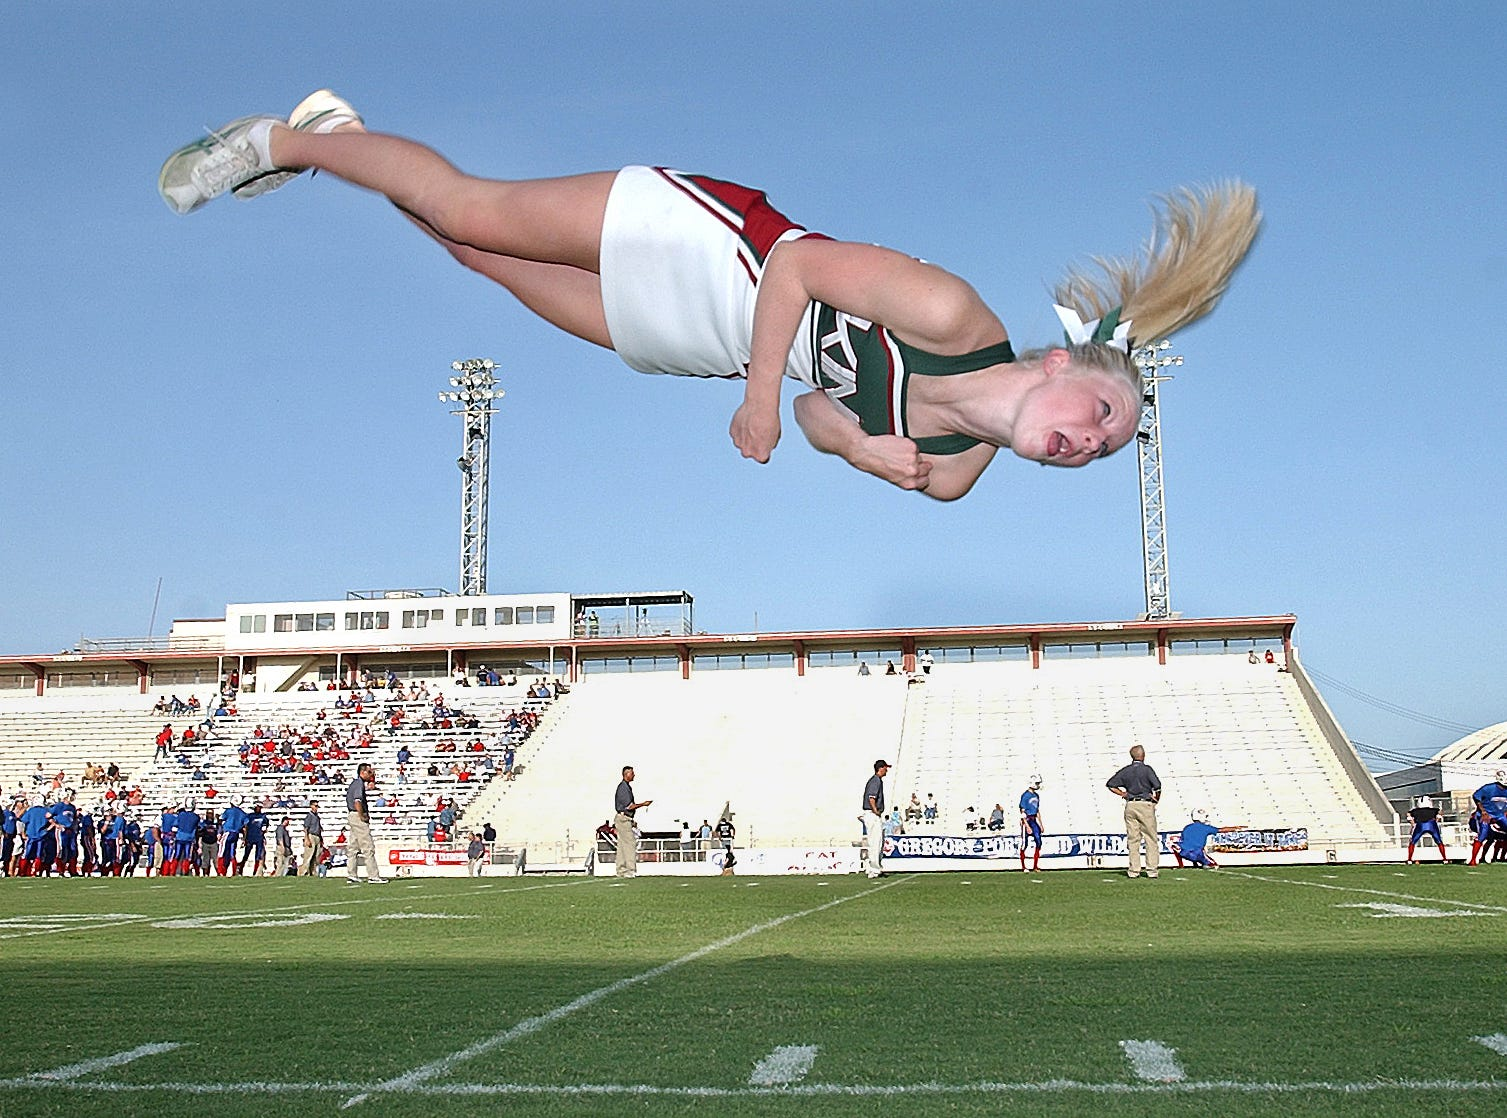 King High School cheerleader Morgan McKay (16) added a twist to her handspring as the King cheerleaders warmed up before the game between King and Gregory-Portland at Buc Stadium on Aug. 26, 2004.